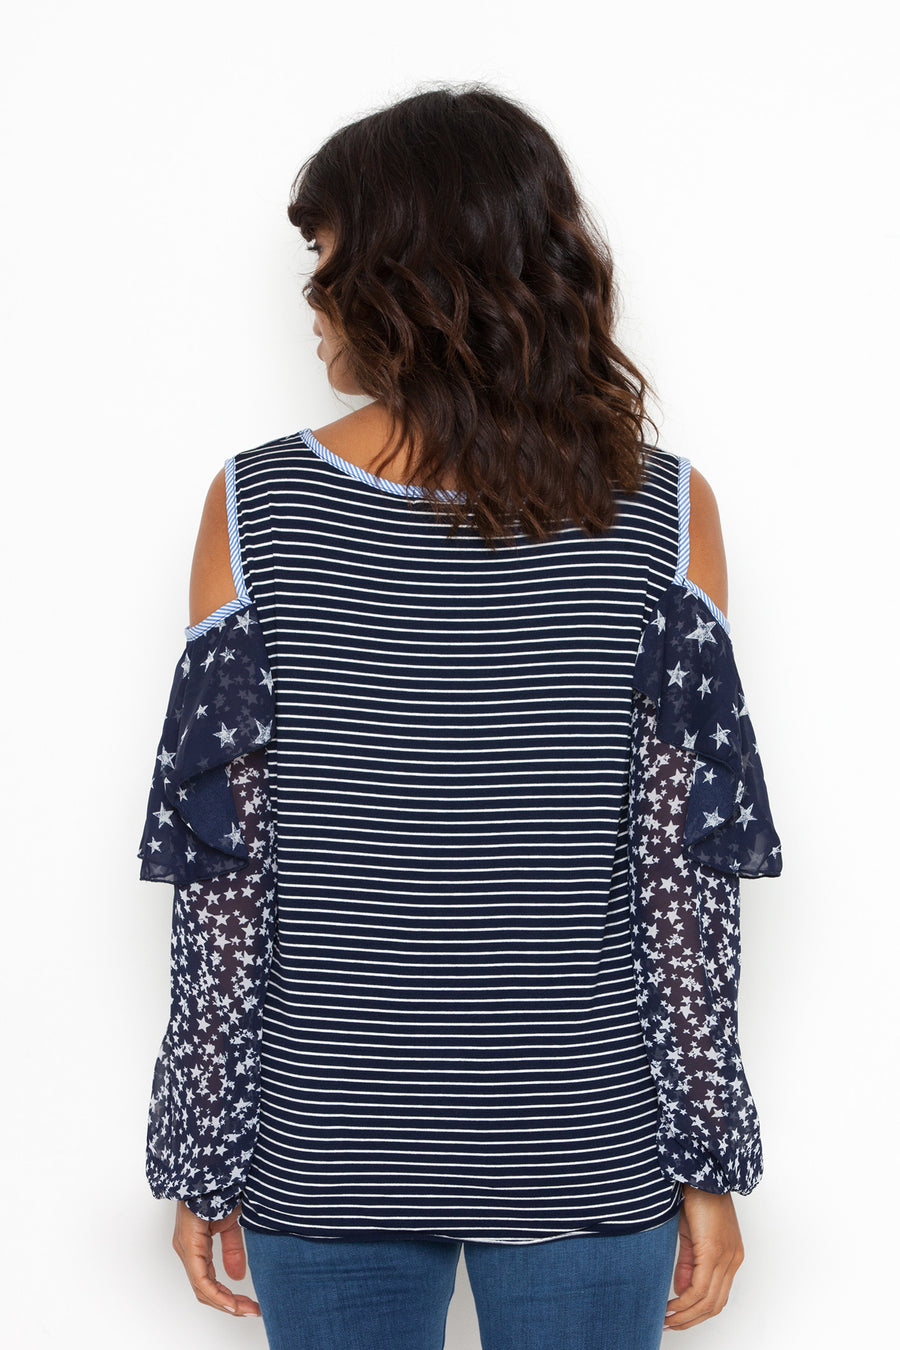 June Blouse in Navy/Off White